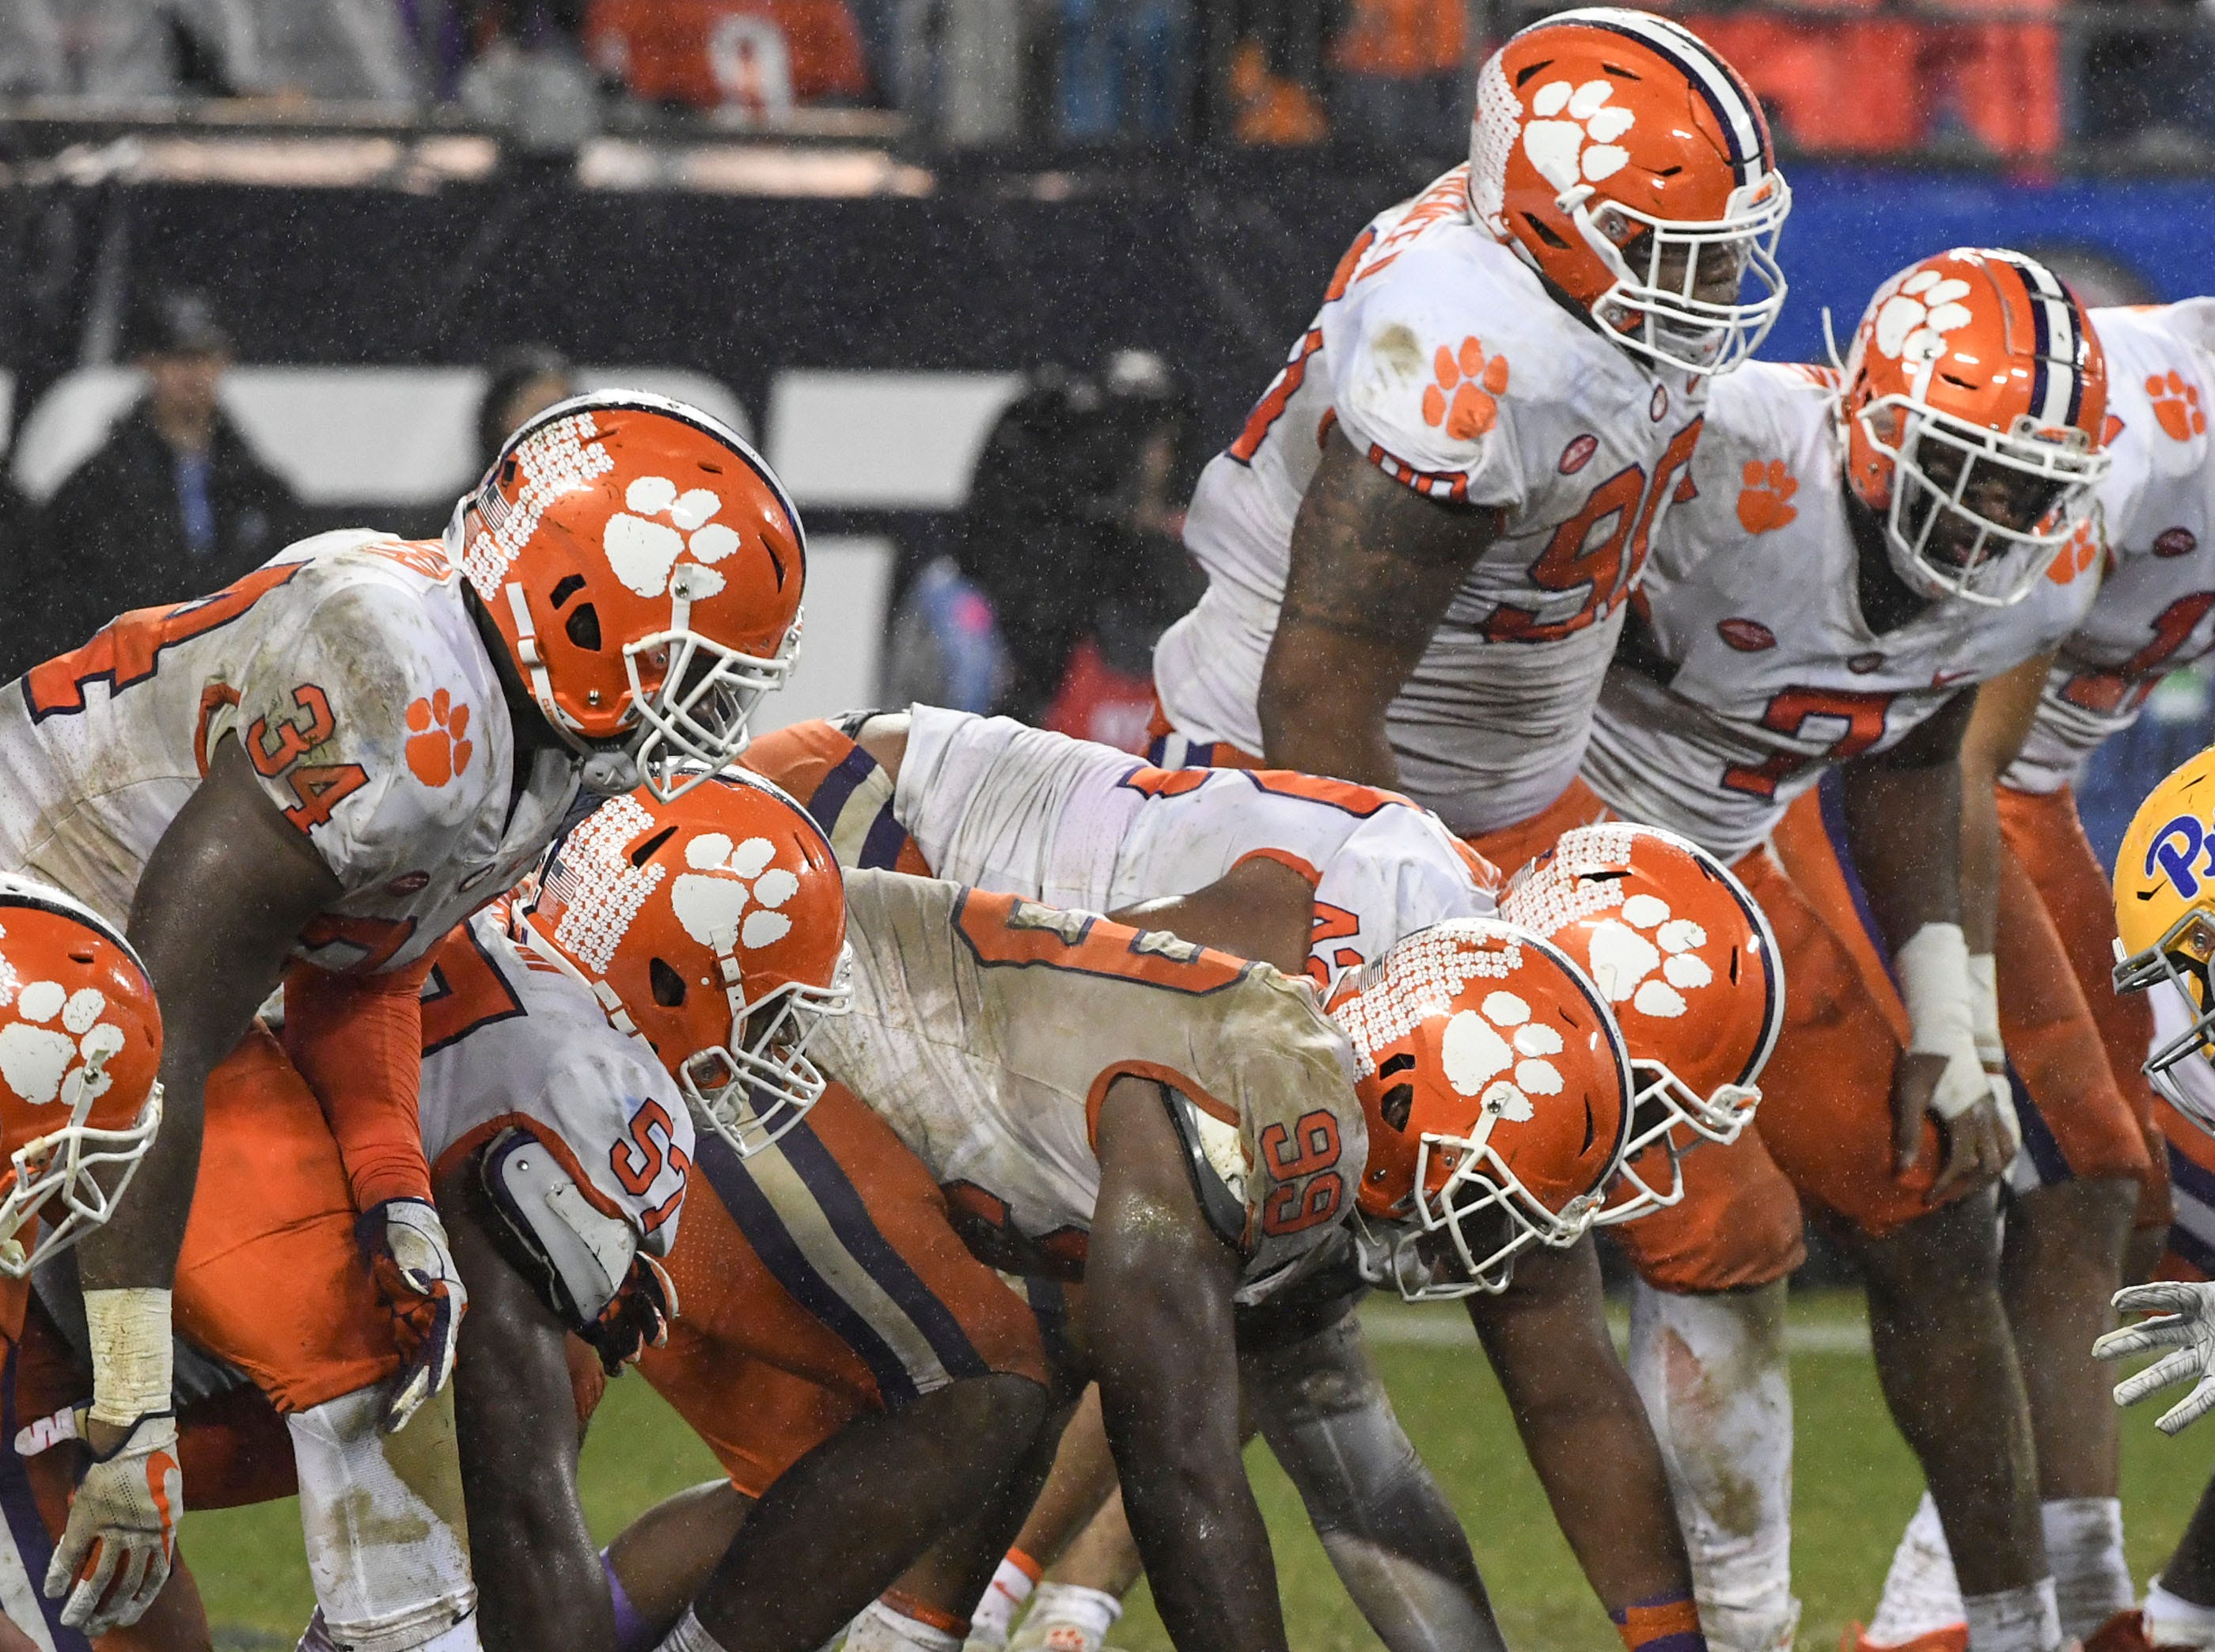 Clemson defensive linemen stack up for a play against Pittsburgh during the third quarter of the Dr. Pepper ACC football championship at Bank of America Stadium in Charlotte, N.C. on Saturday, December 1, 2018.